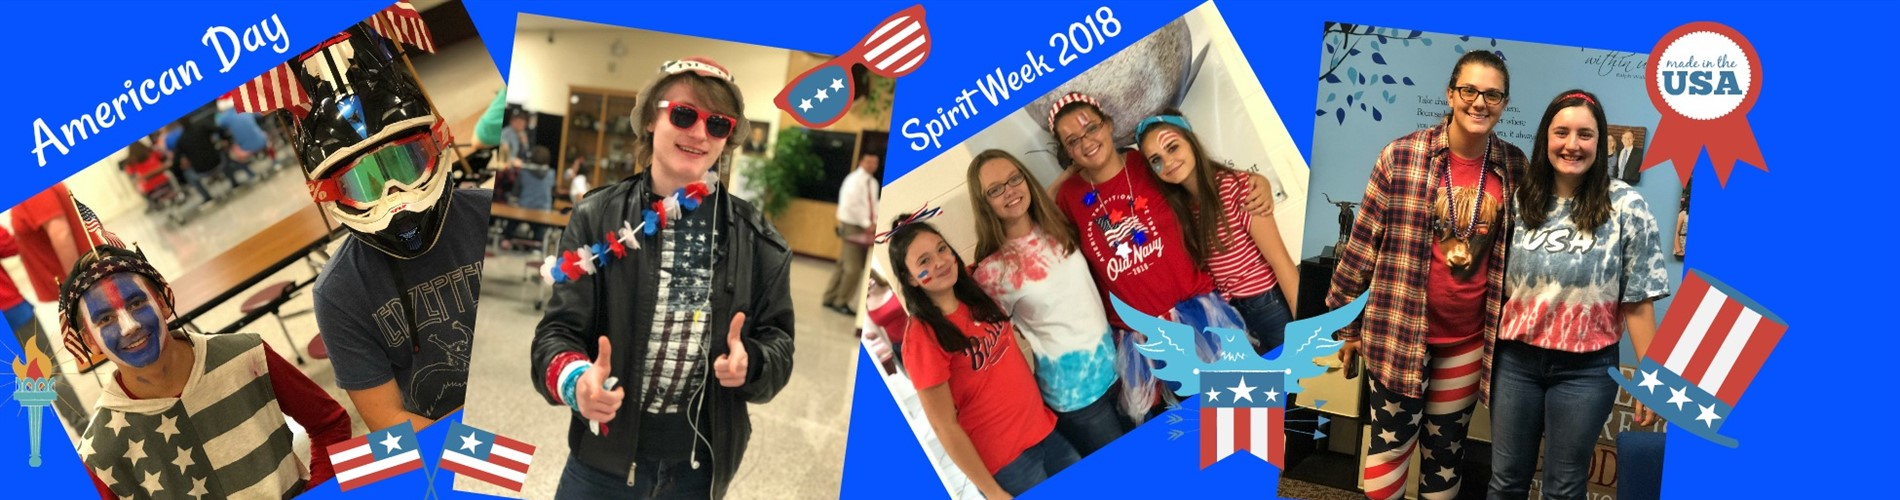 Students dressed up for America Day during Spirit Week